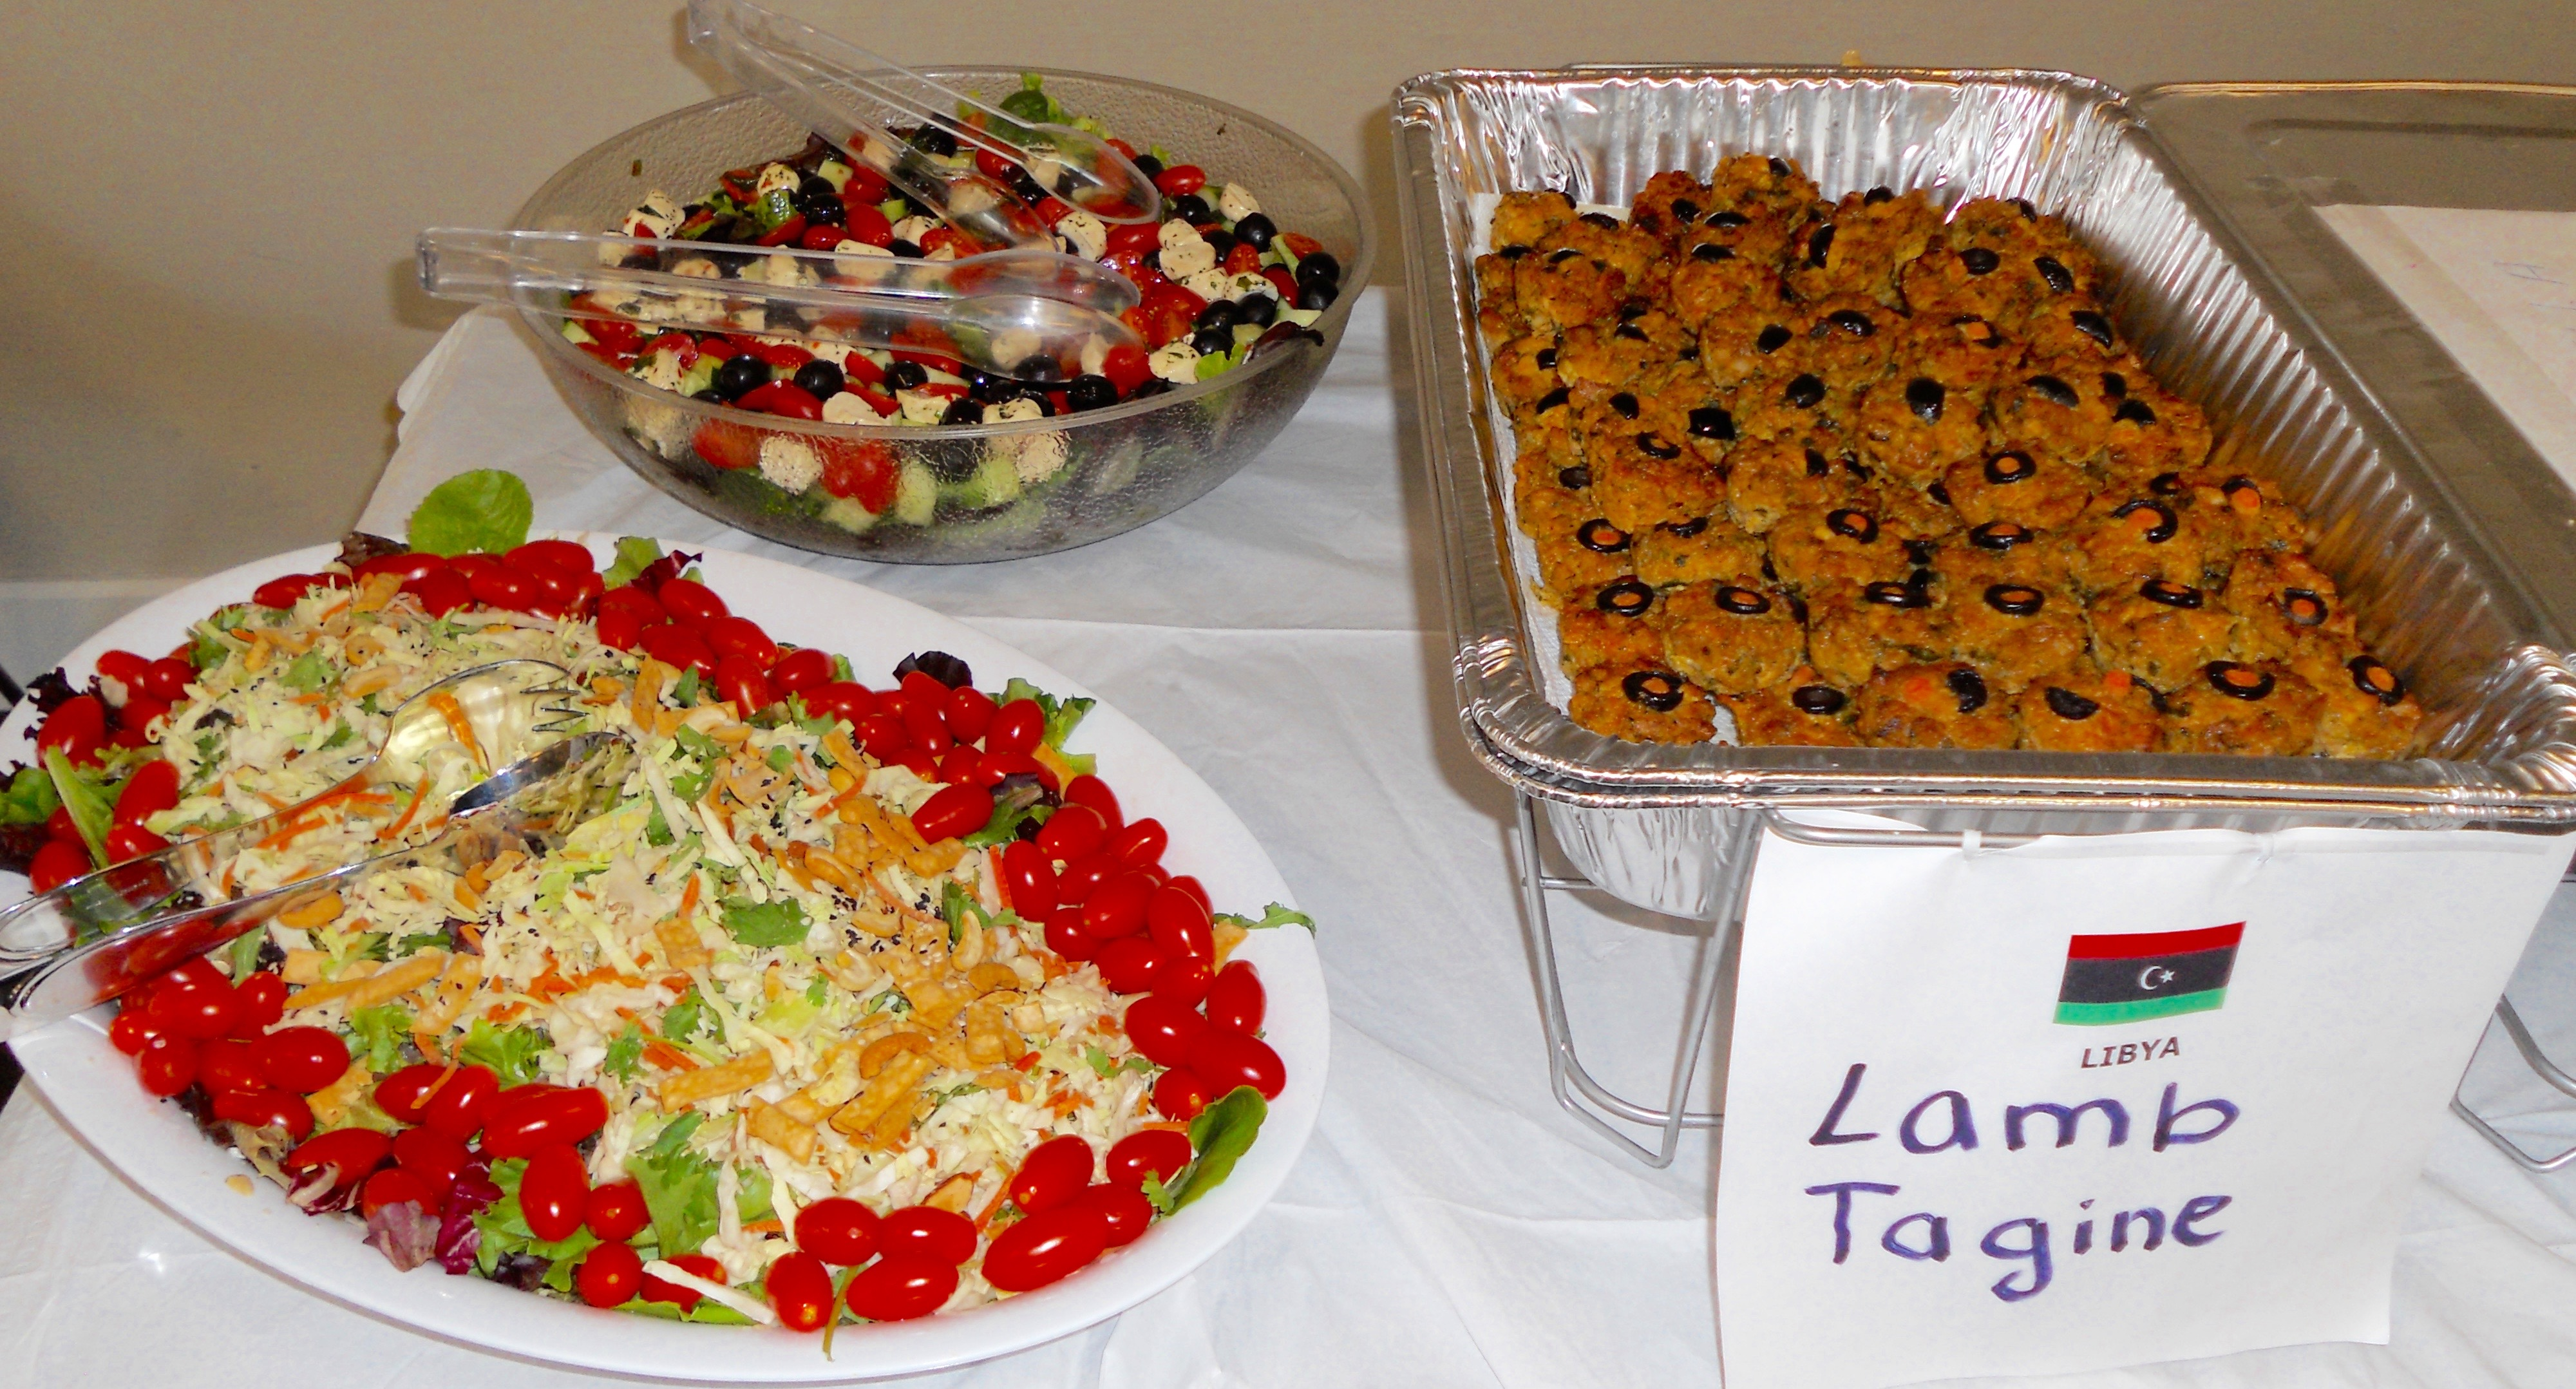 Nyc international food blog united nations of food nyc part 6 salad helps make my day too forumfinder Choice Image